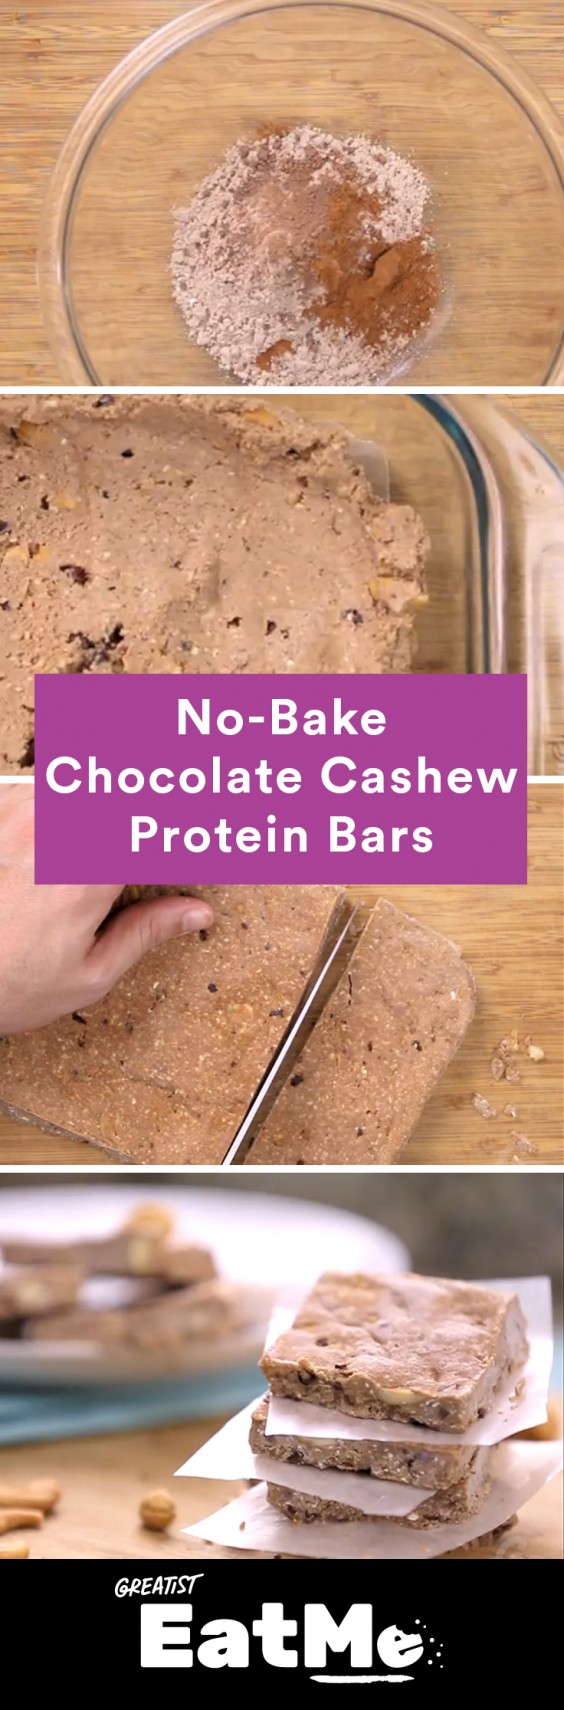 Eat Me Video: Chocolate Cashew Protein Bars